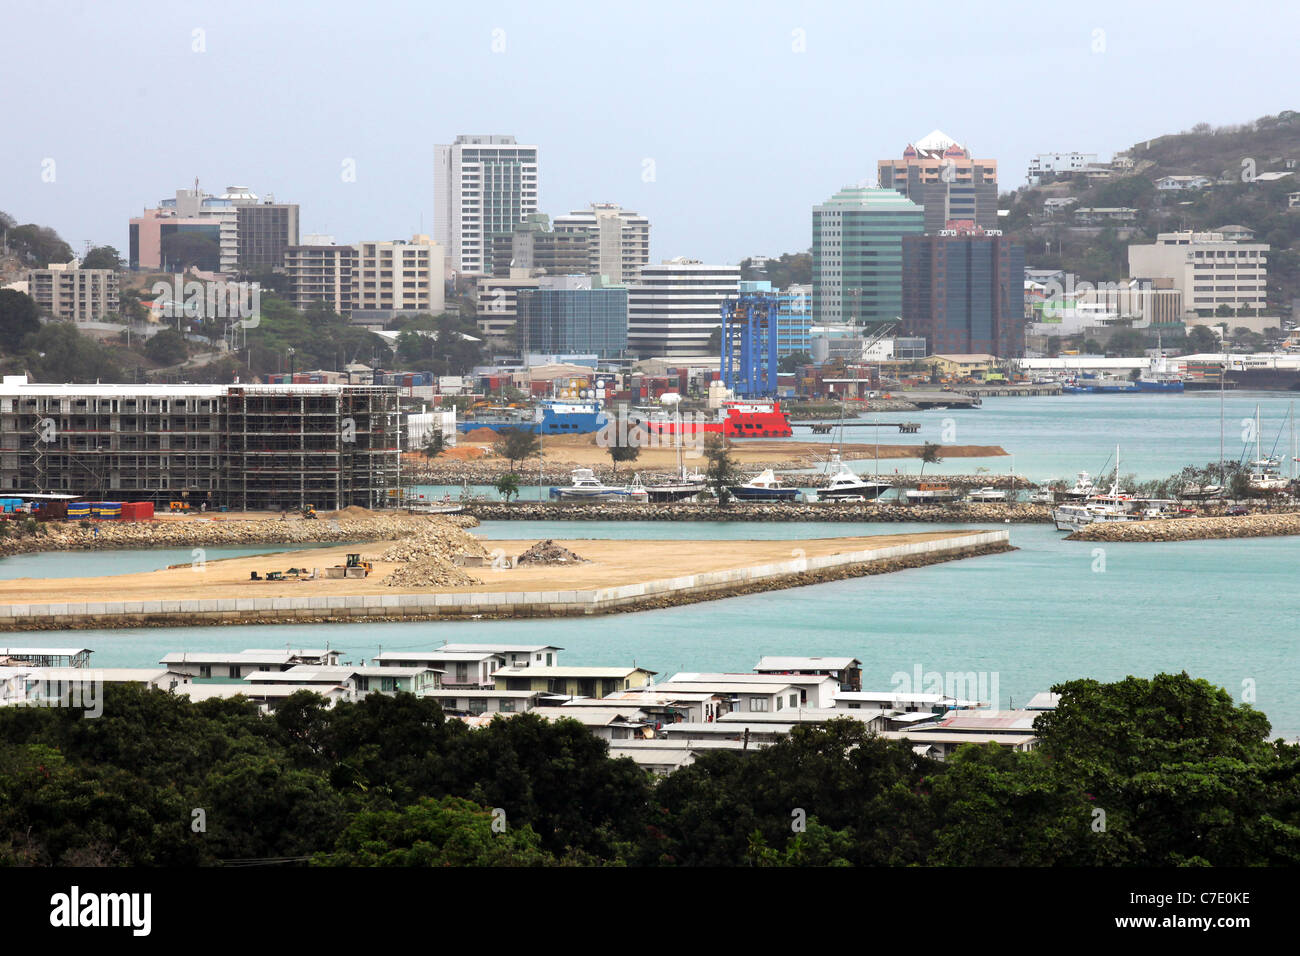 Port Moresby, Capitol of Papua New Guinea - Stock Image